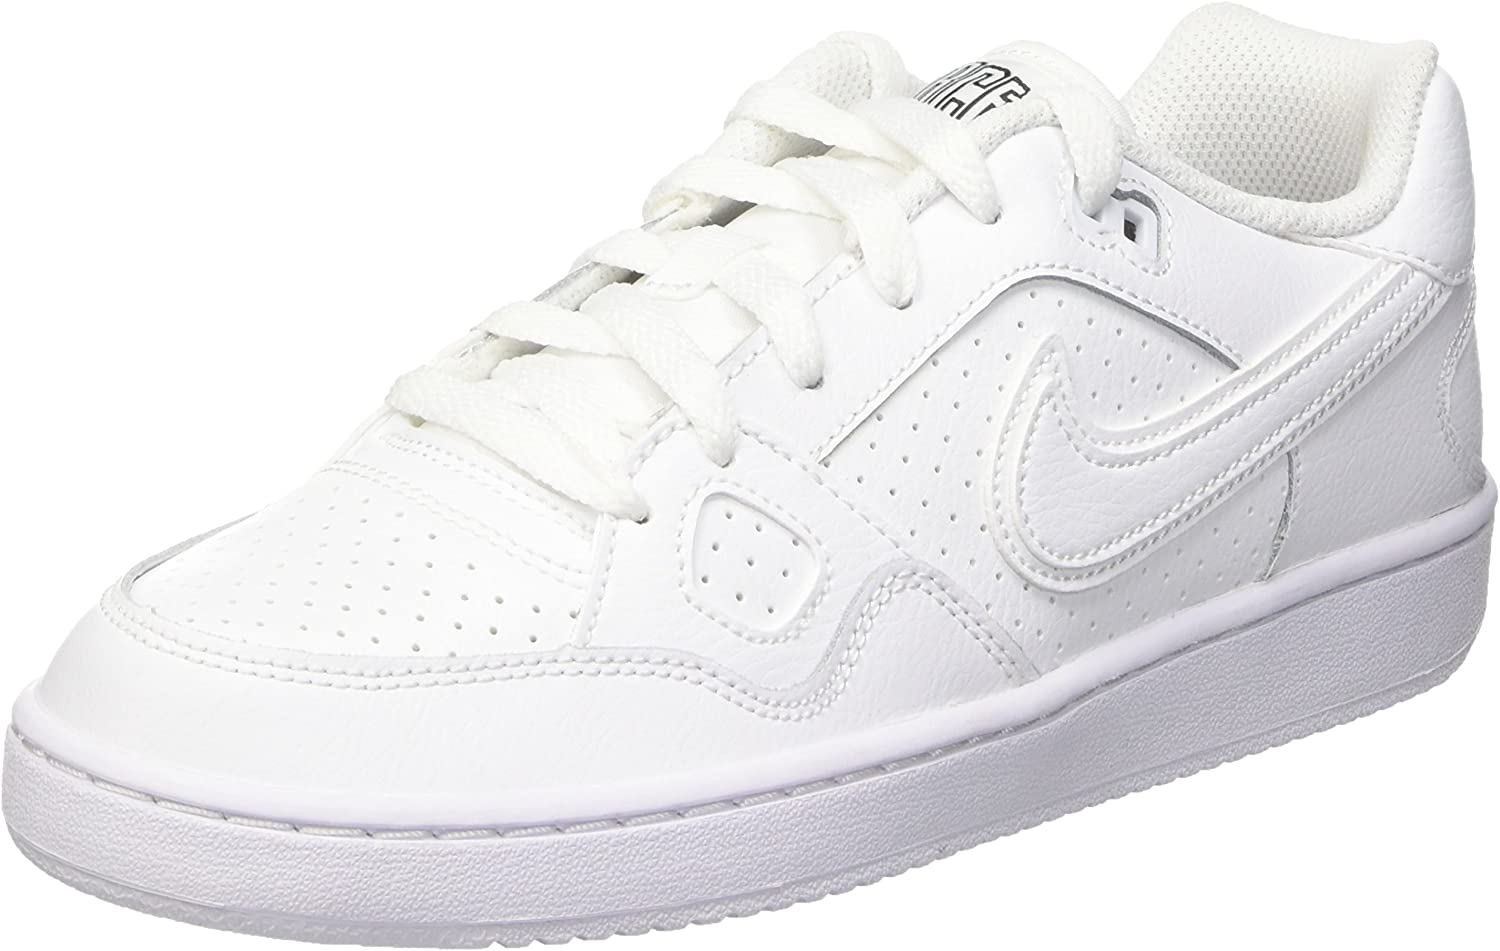 Nike Boys Son of Force Low (GS) Basketball Shoes White White White 615153 109